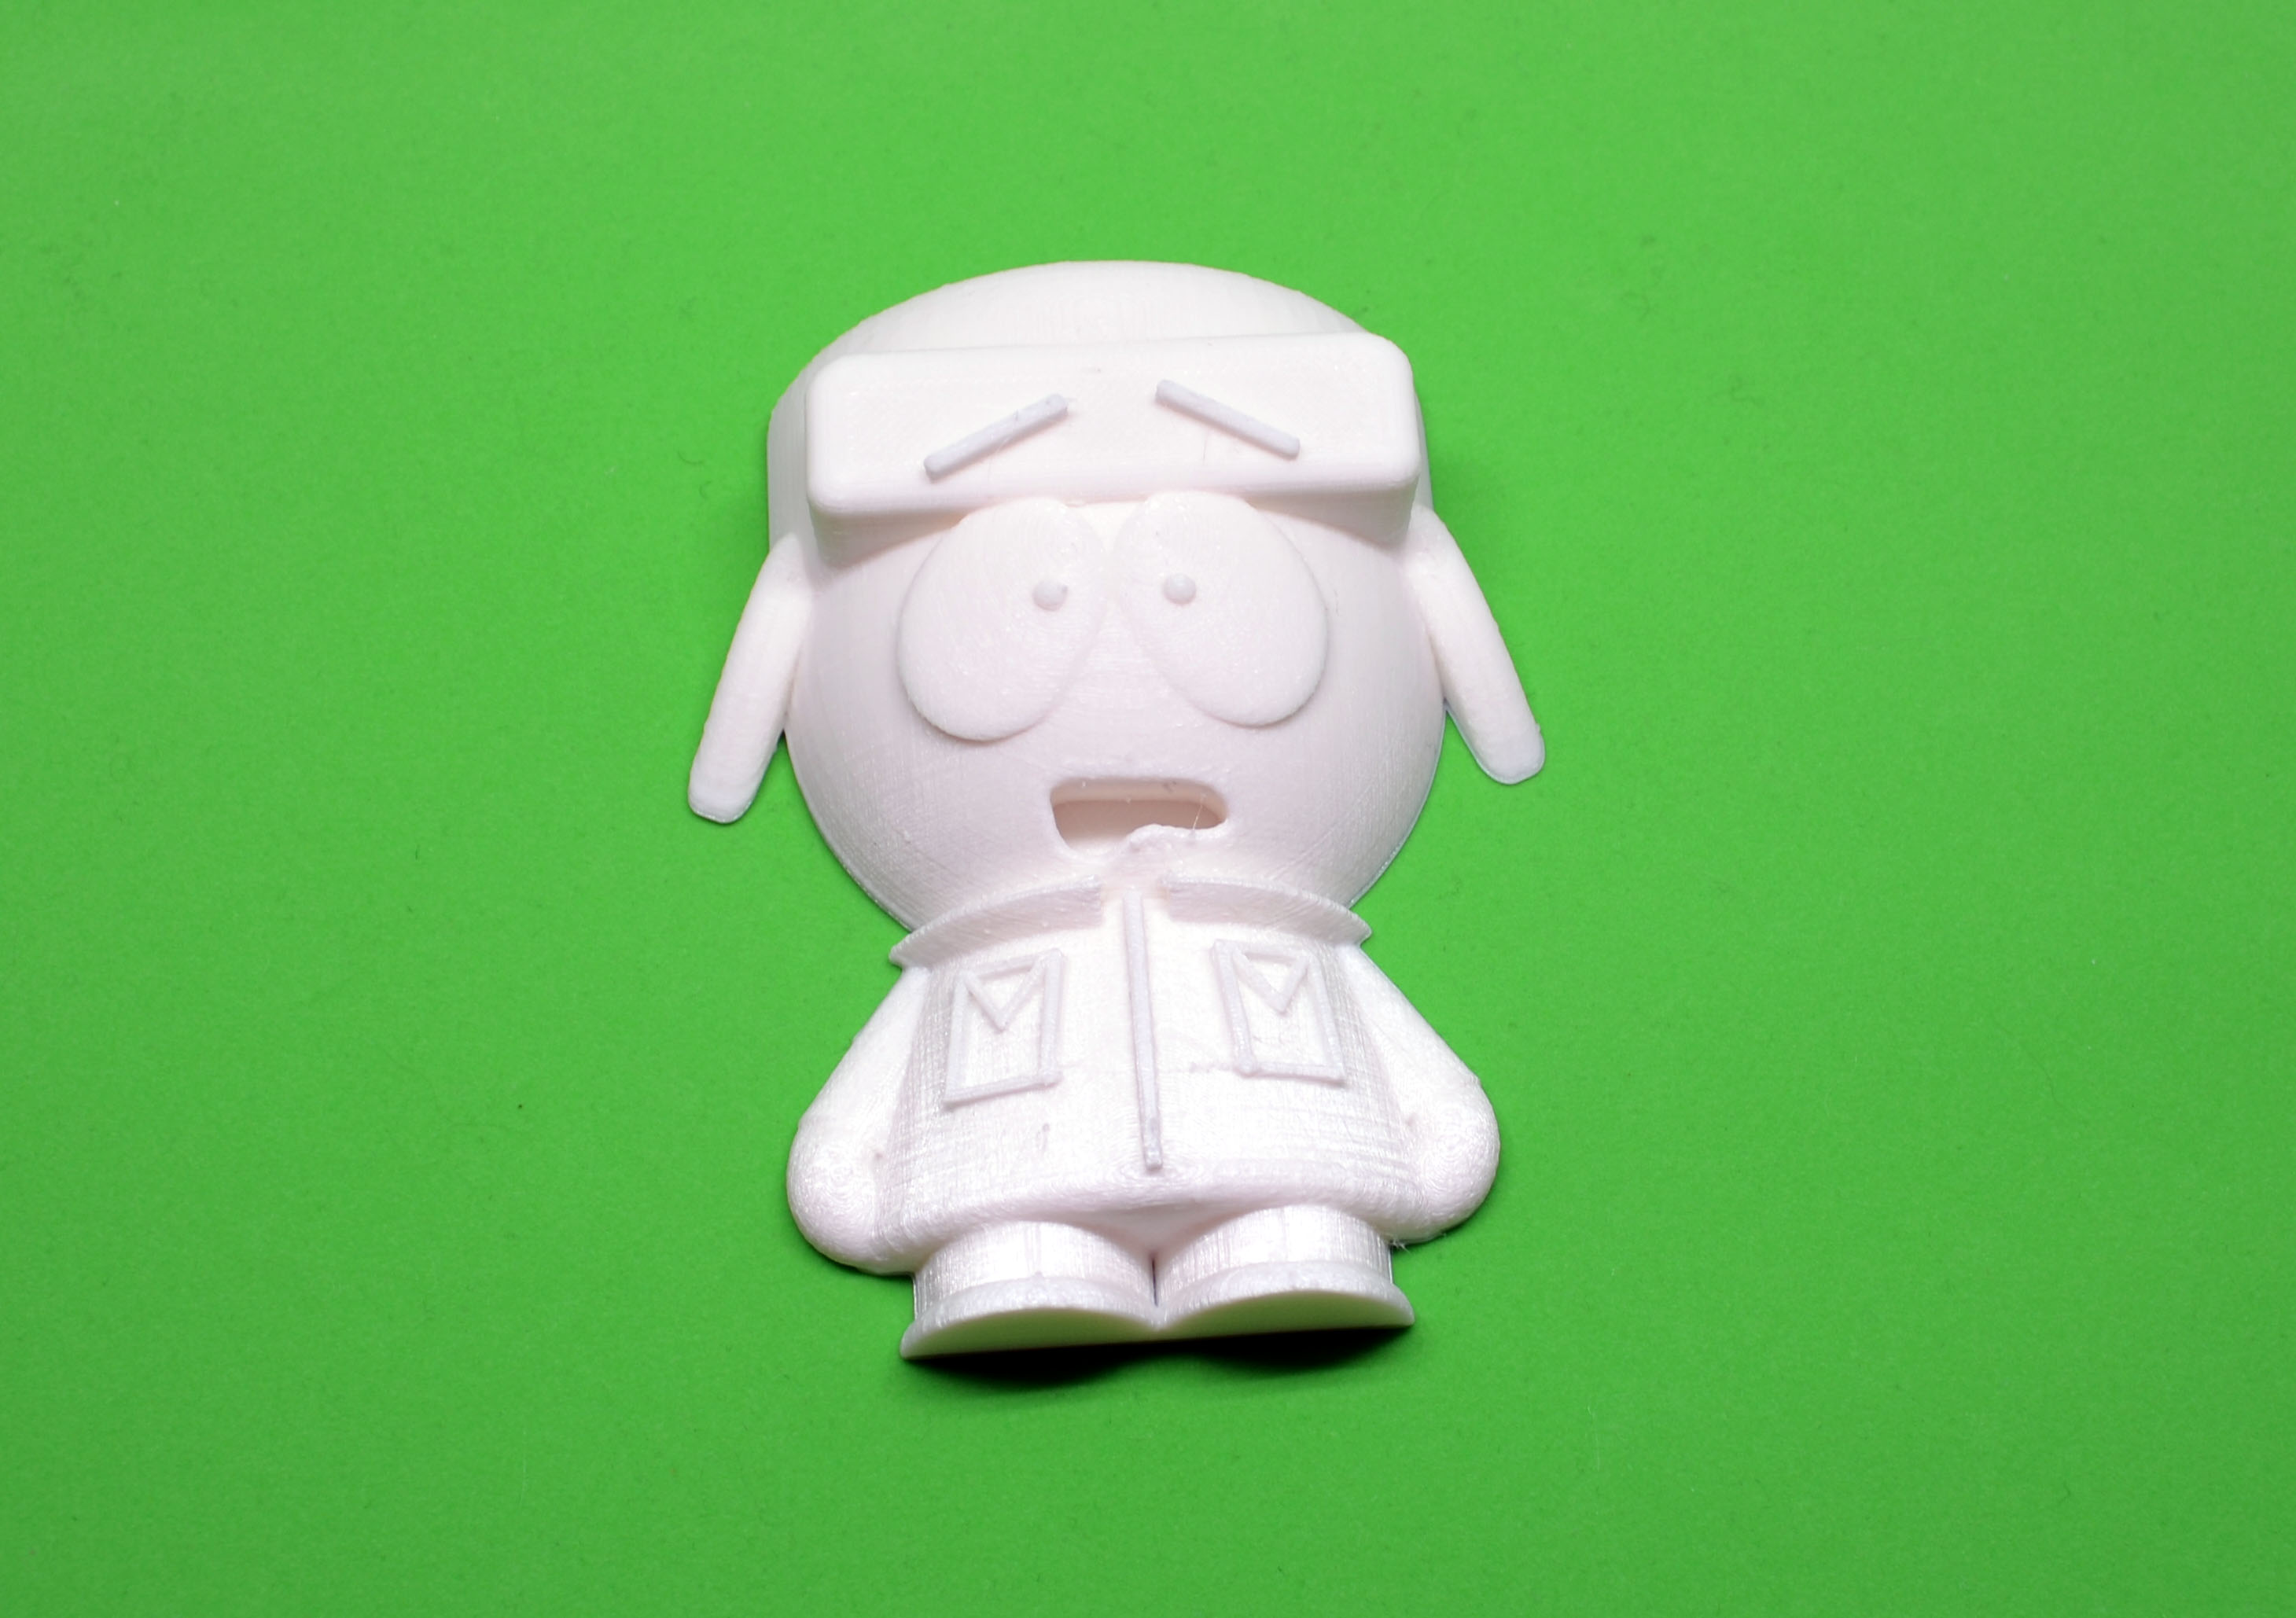 The top half of a South Park Kyle Broflovski model. After I print the other half of the model to make a standing figure, I'll try to paint it with acrylic paint. As you can see, the raw quality is excellent.